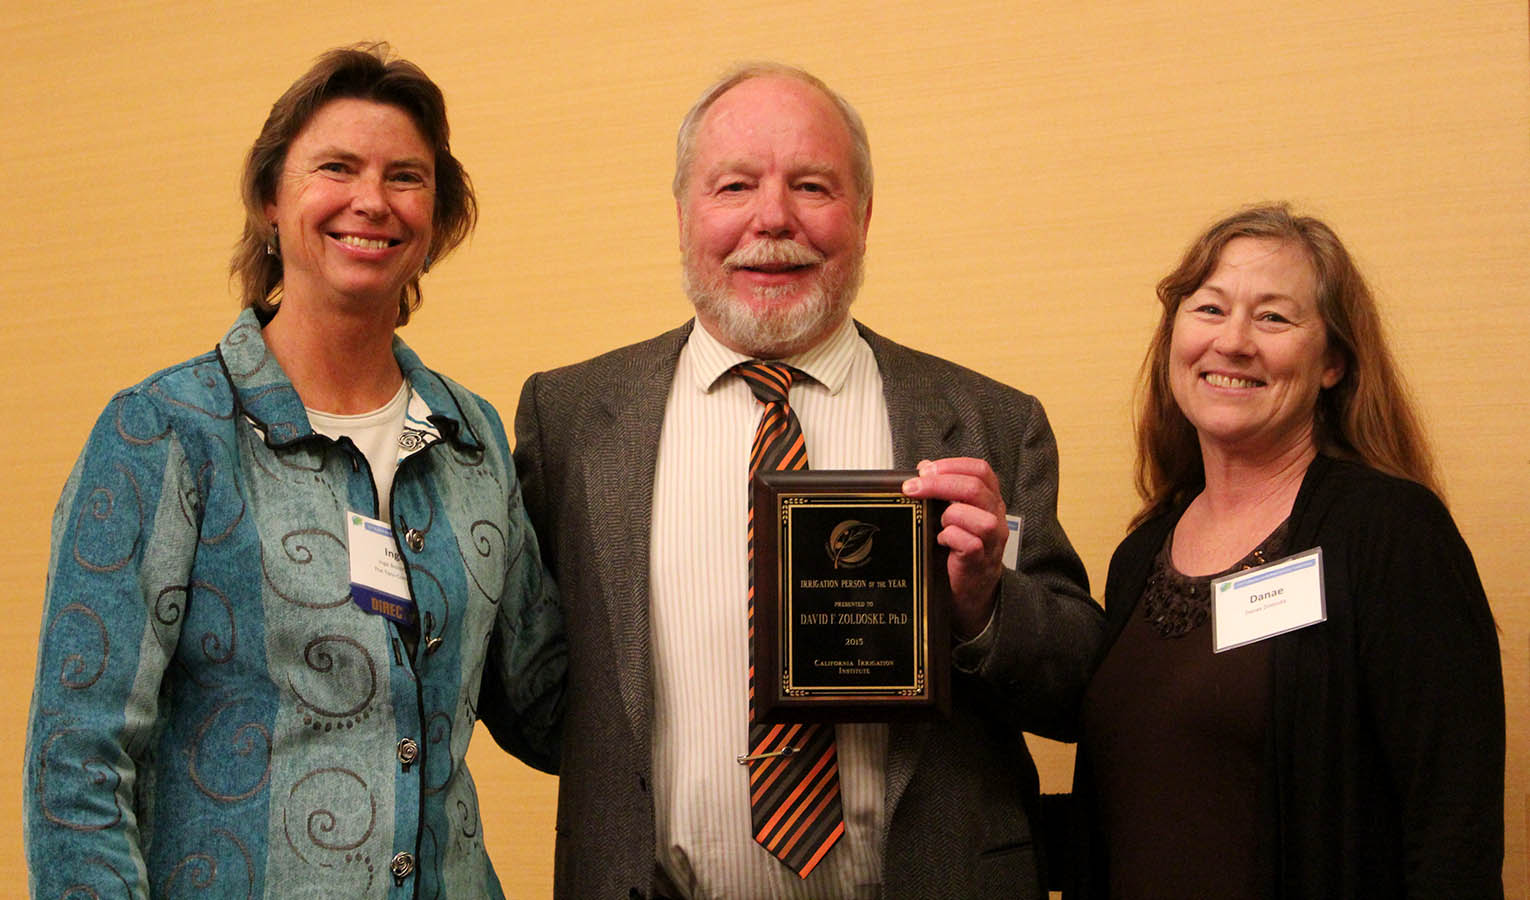 Dr. David Zoldoske - 2014 California Irrigation Institute Person of the Year